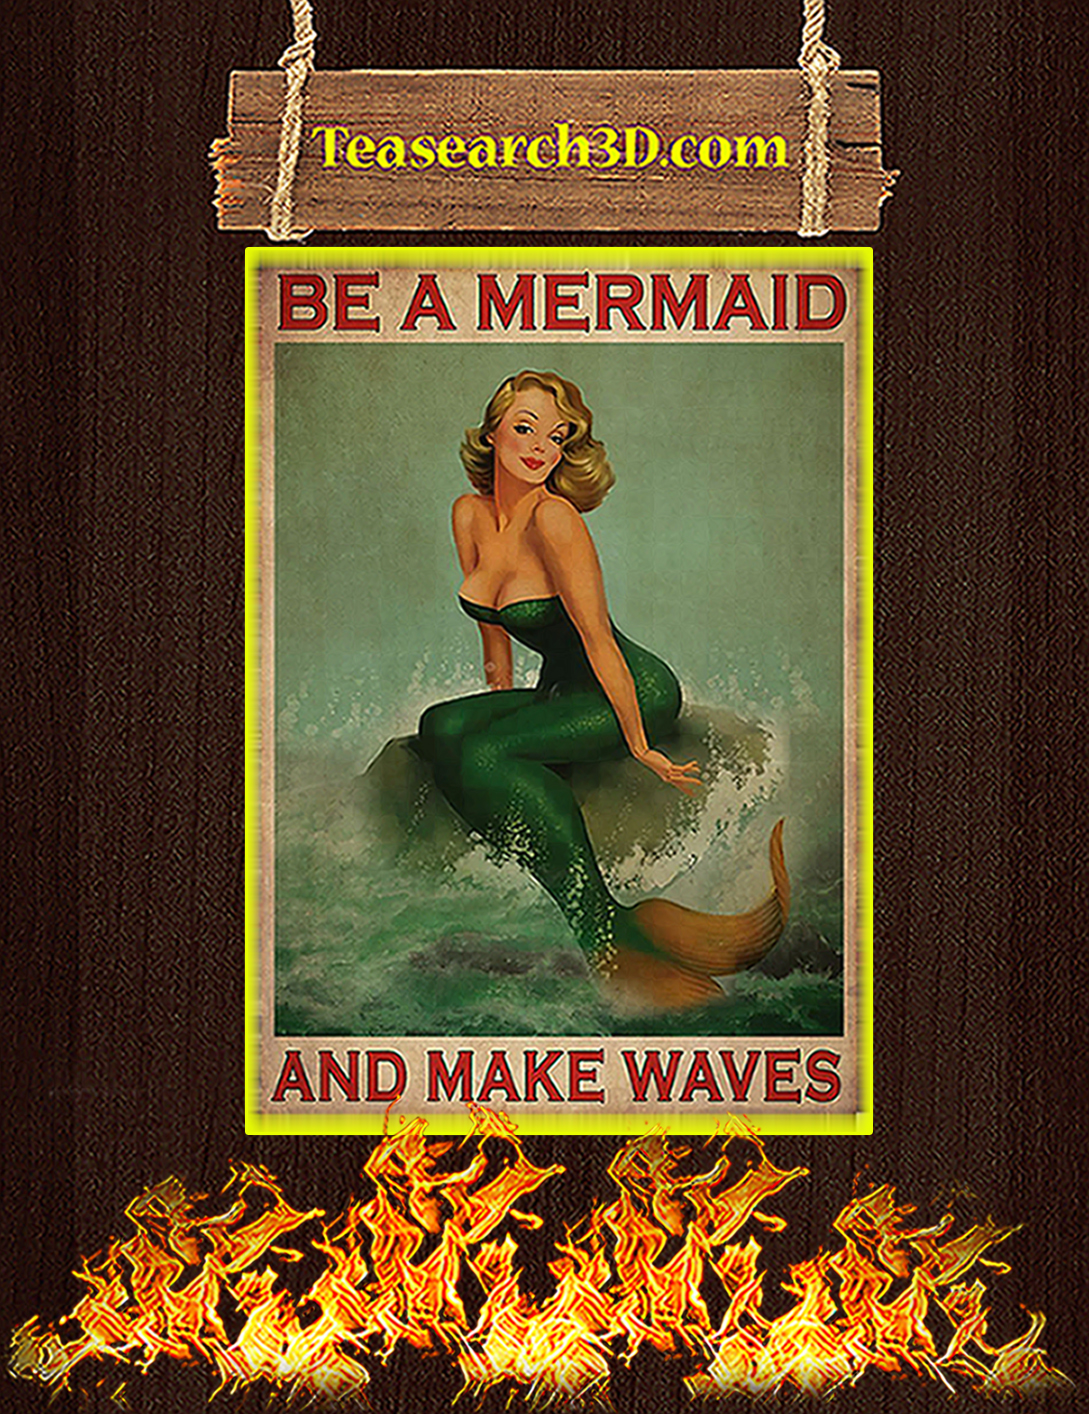 Be a mermaid and make waves poster A2